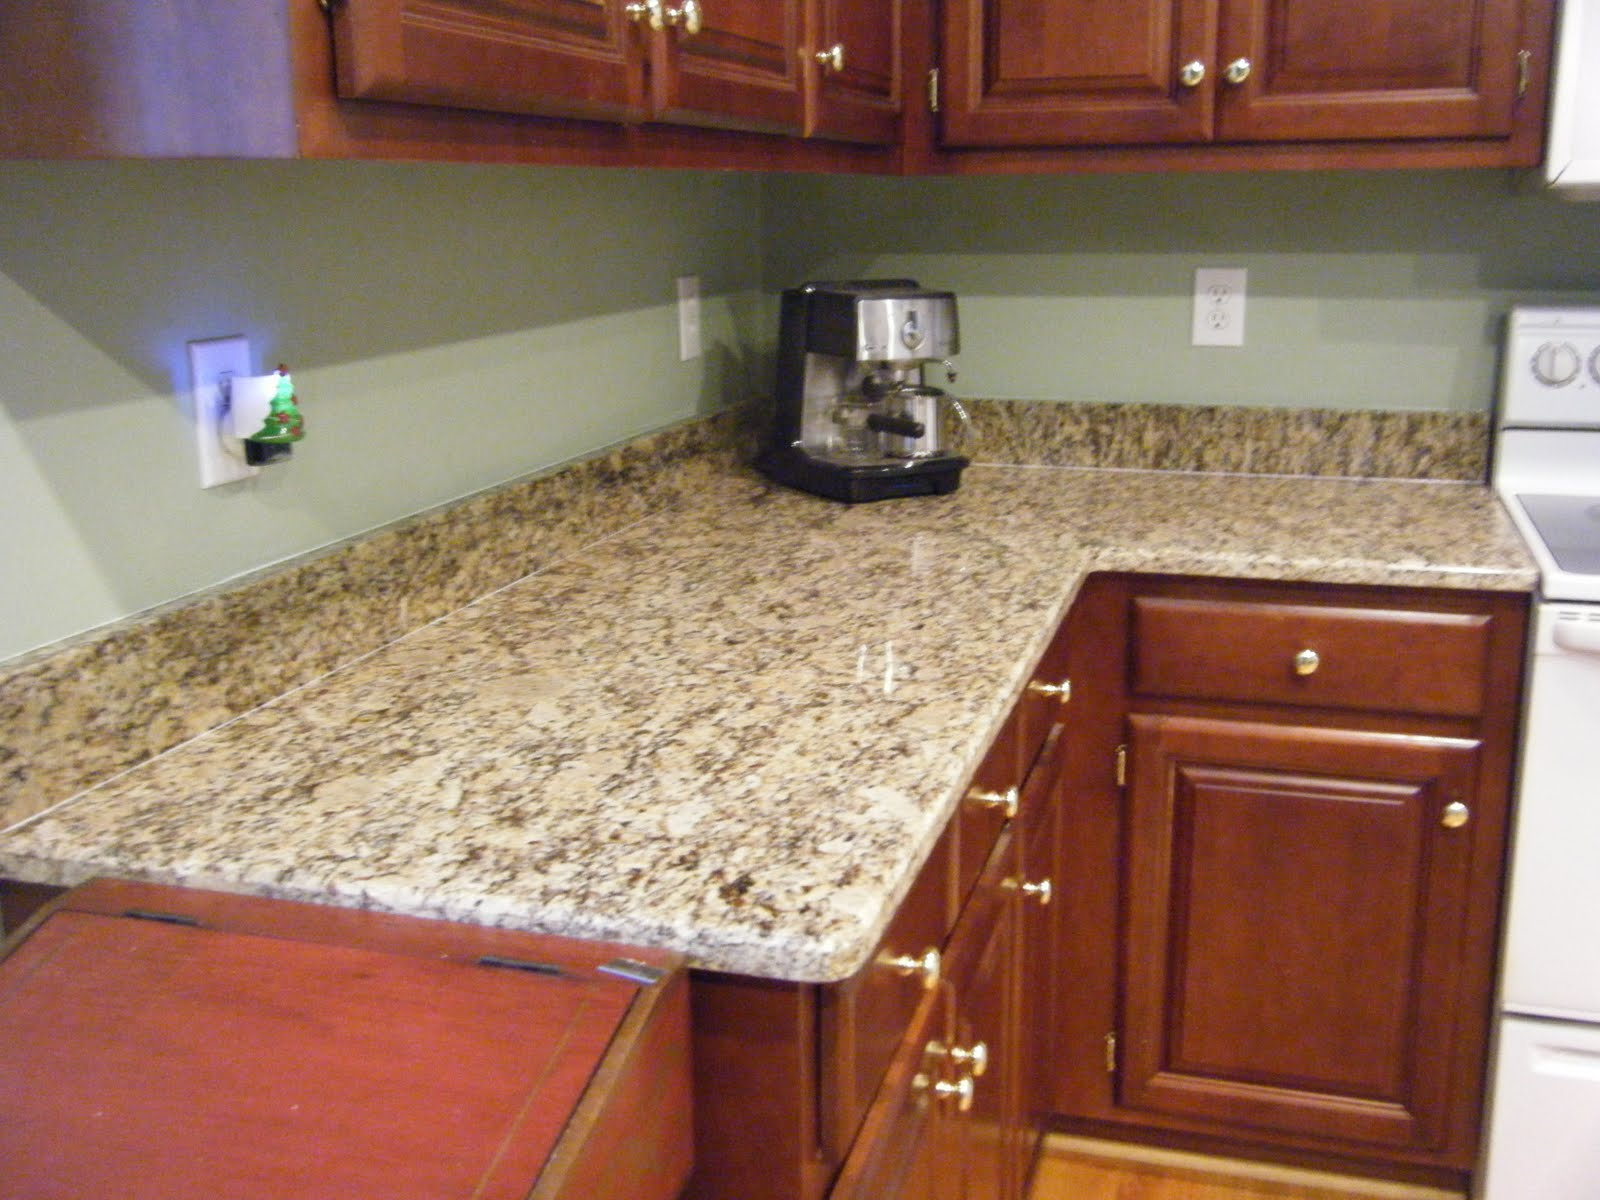 best xfile exquisite santa of with the uncategorized cabinet and picture nj cecilia popular ideas granite countertops countertop backsplash